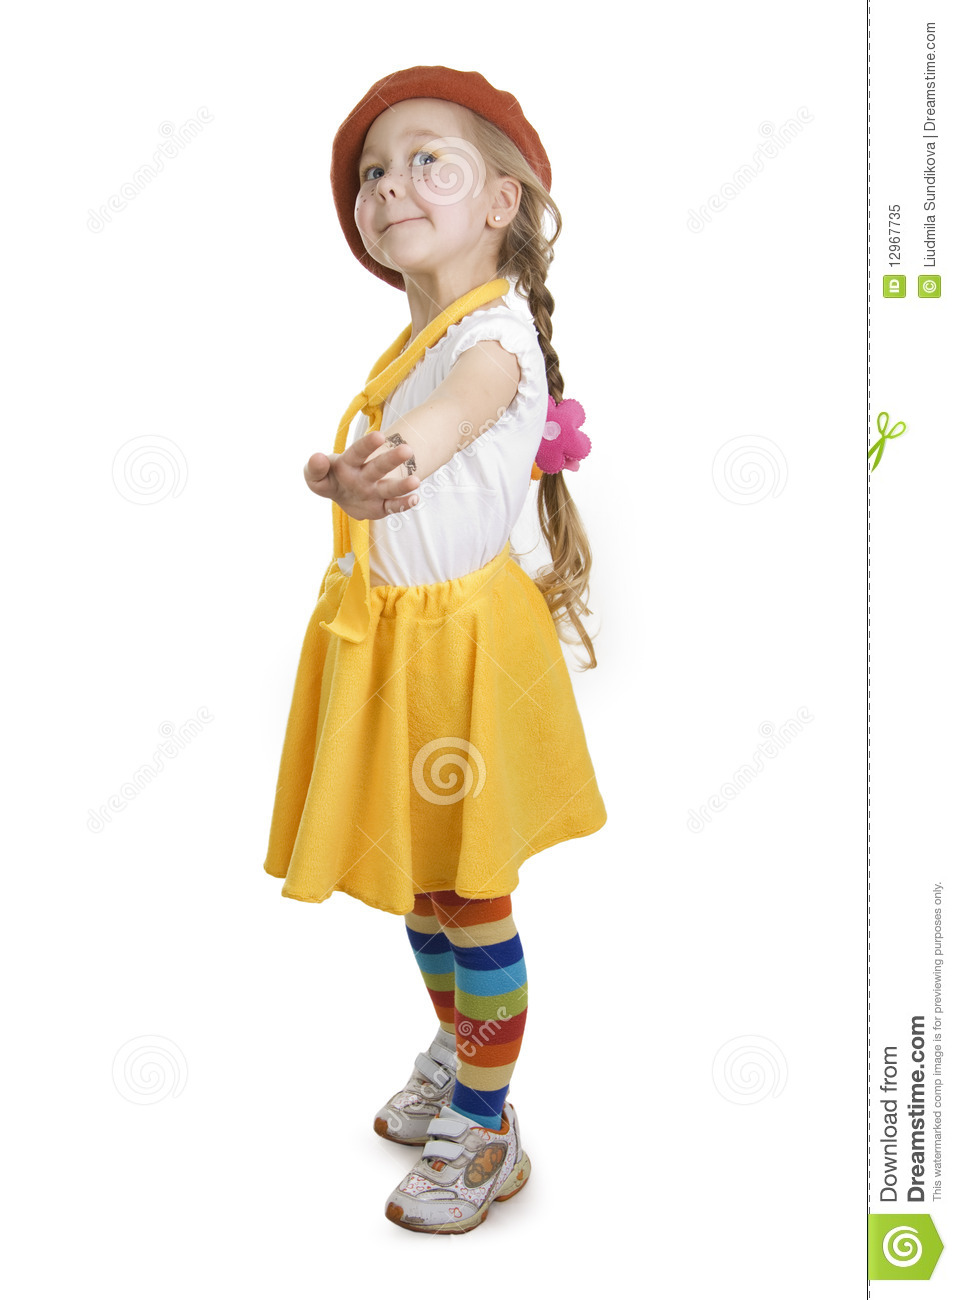 fashionable little girl stock image image of clothing